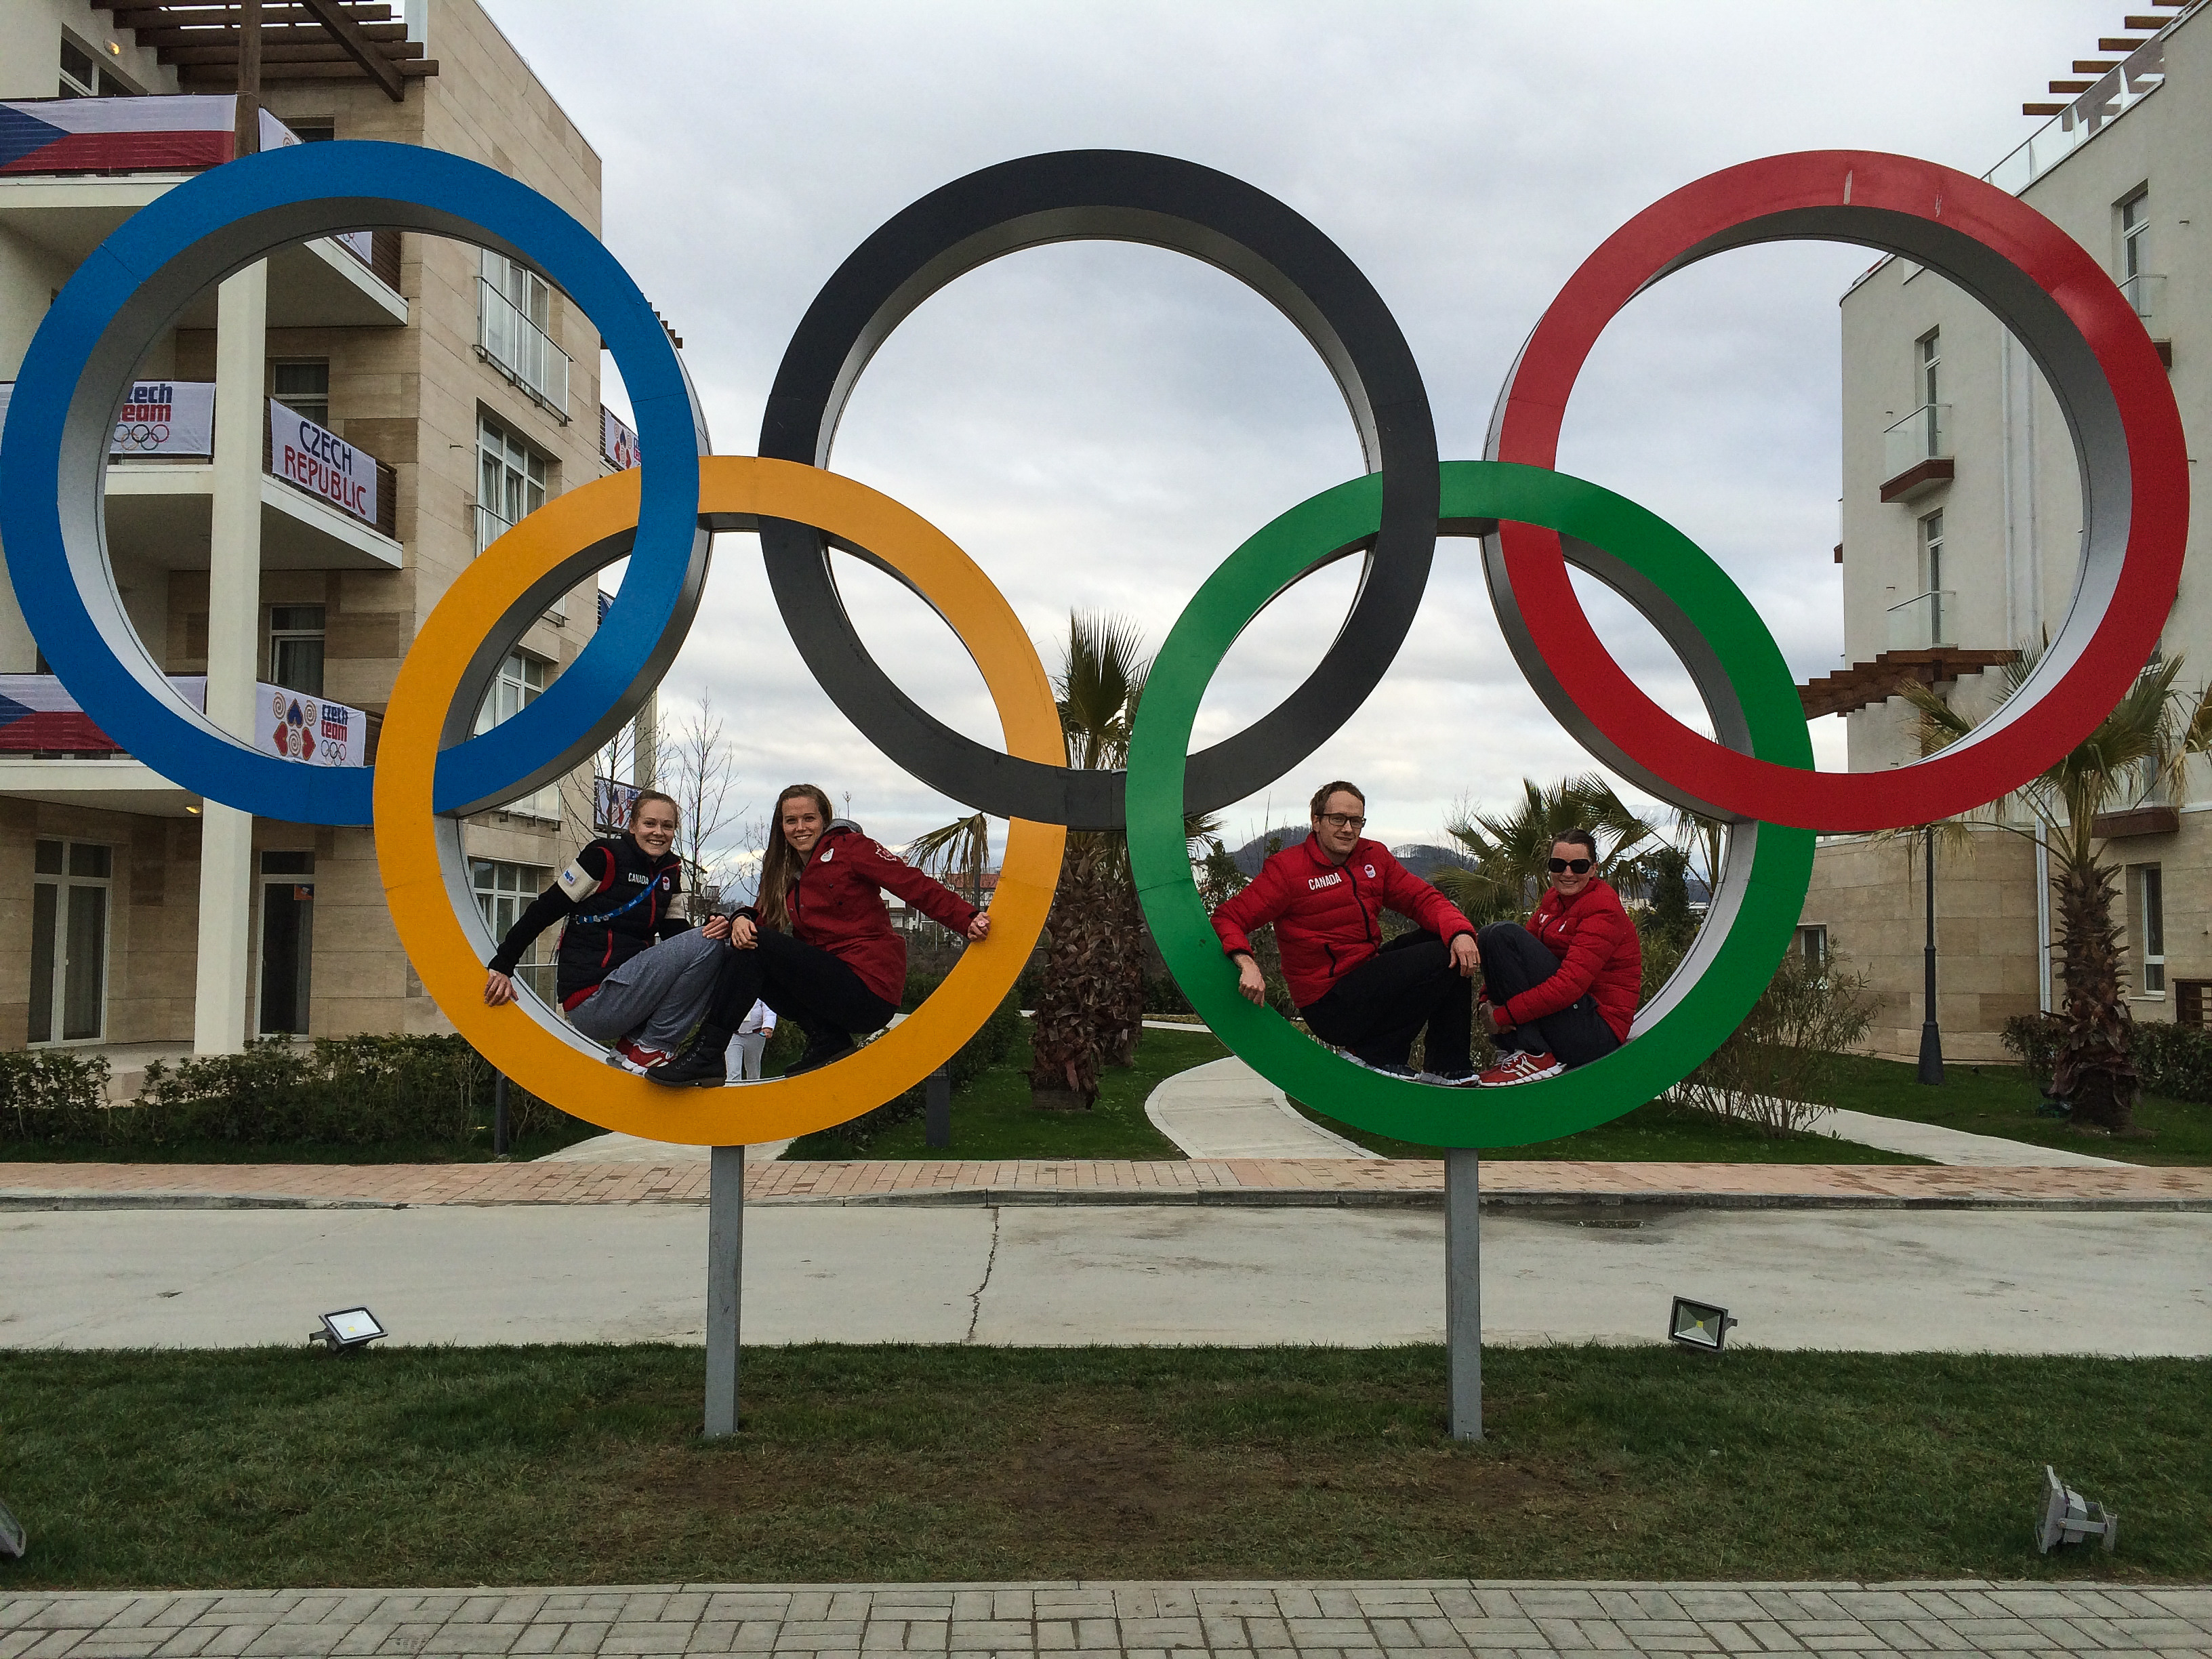 Siblings Jessica Levins, Sarah O'Neill and Jamie Gregg, along with Jamie's wife, Danielle, pose for a photo with the rings in the Sochi athletes village. (Supplied by Kathy Gregg)